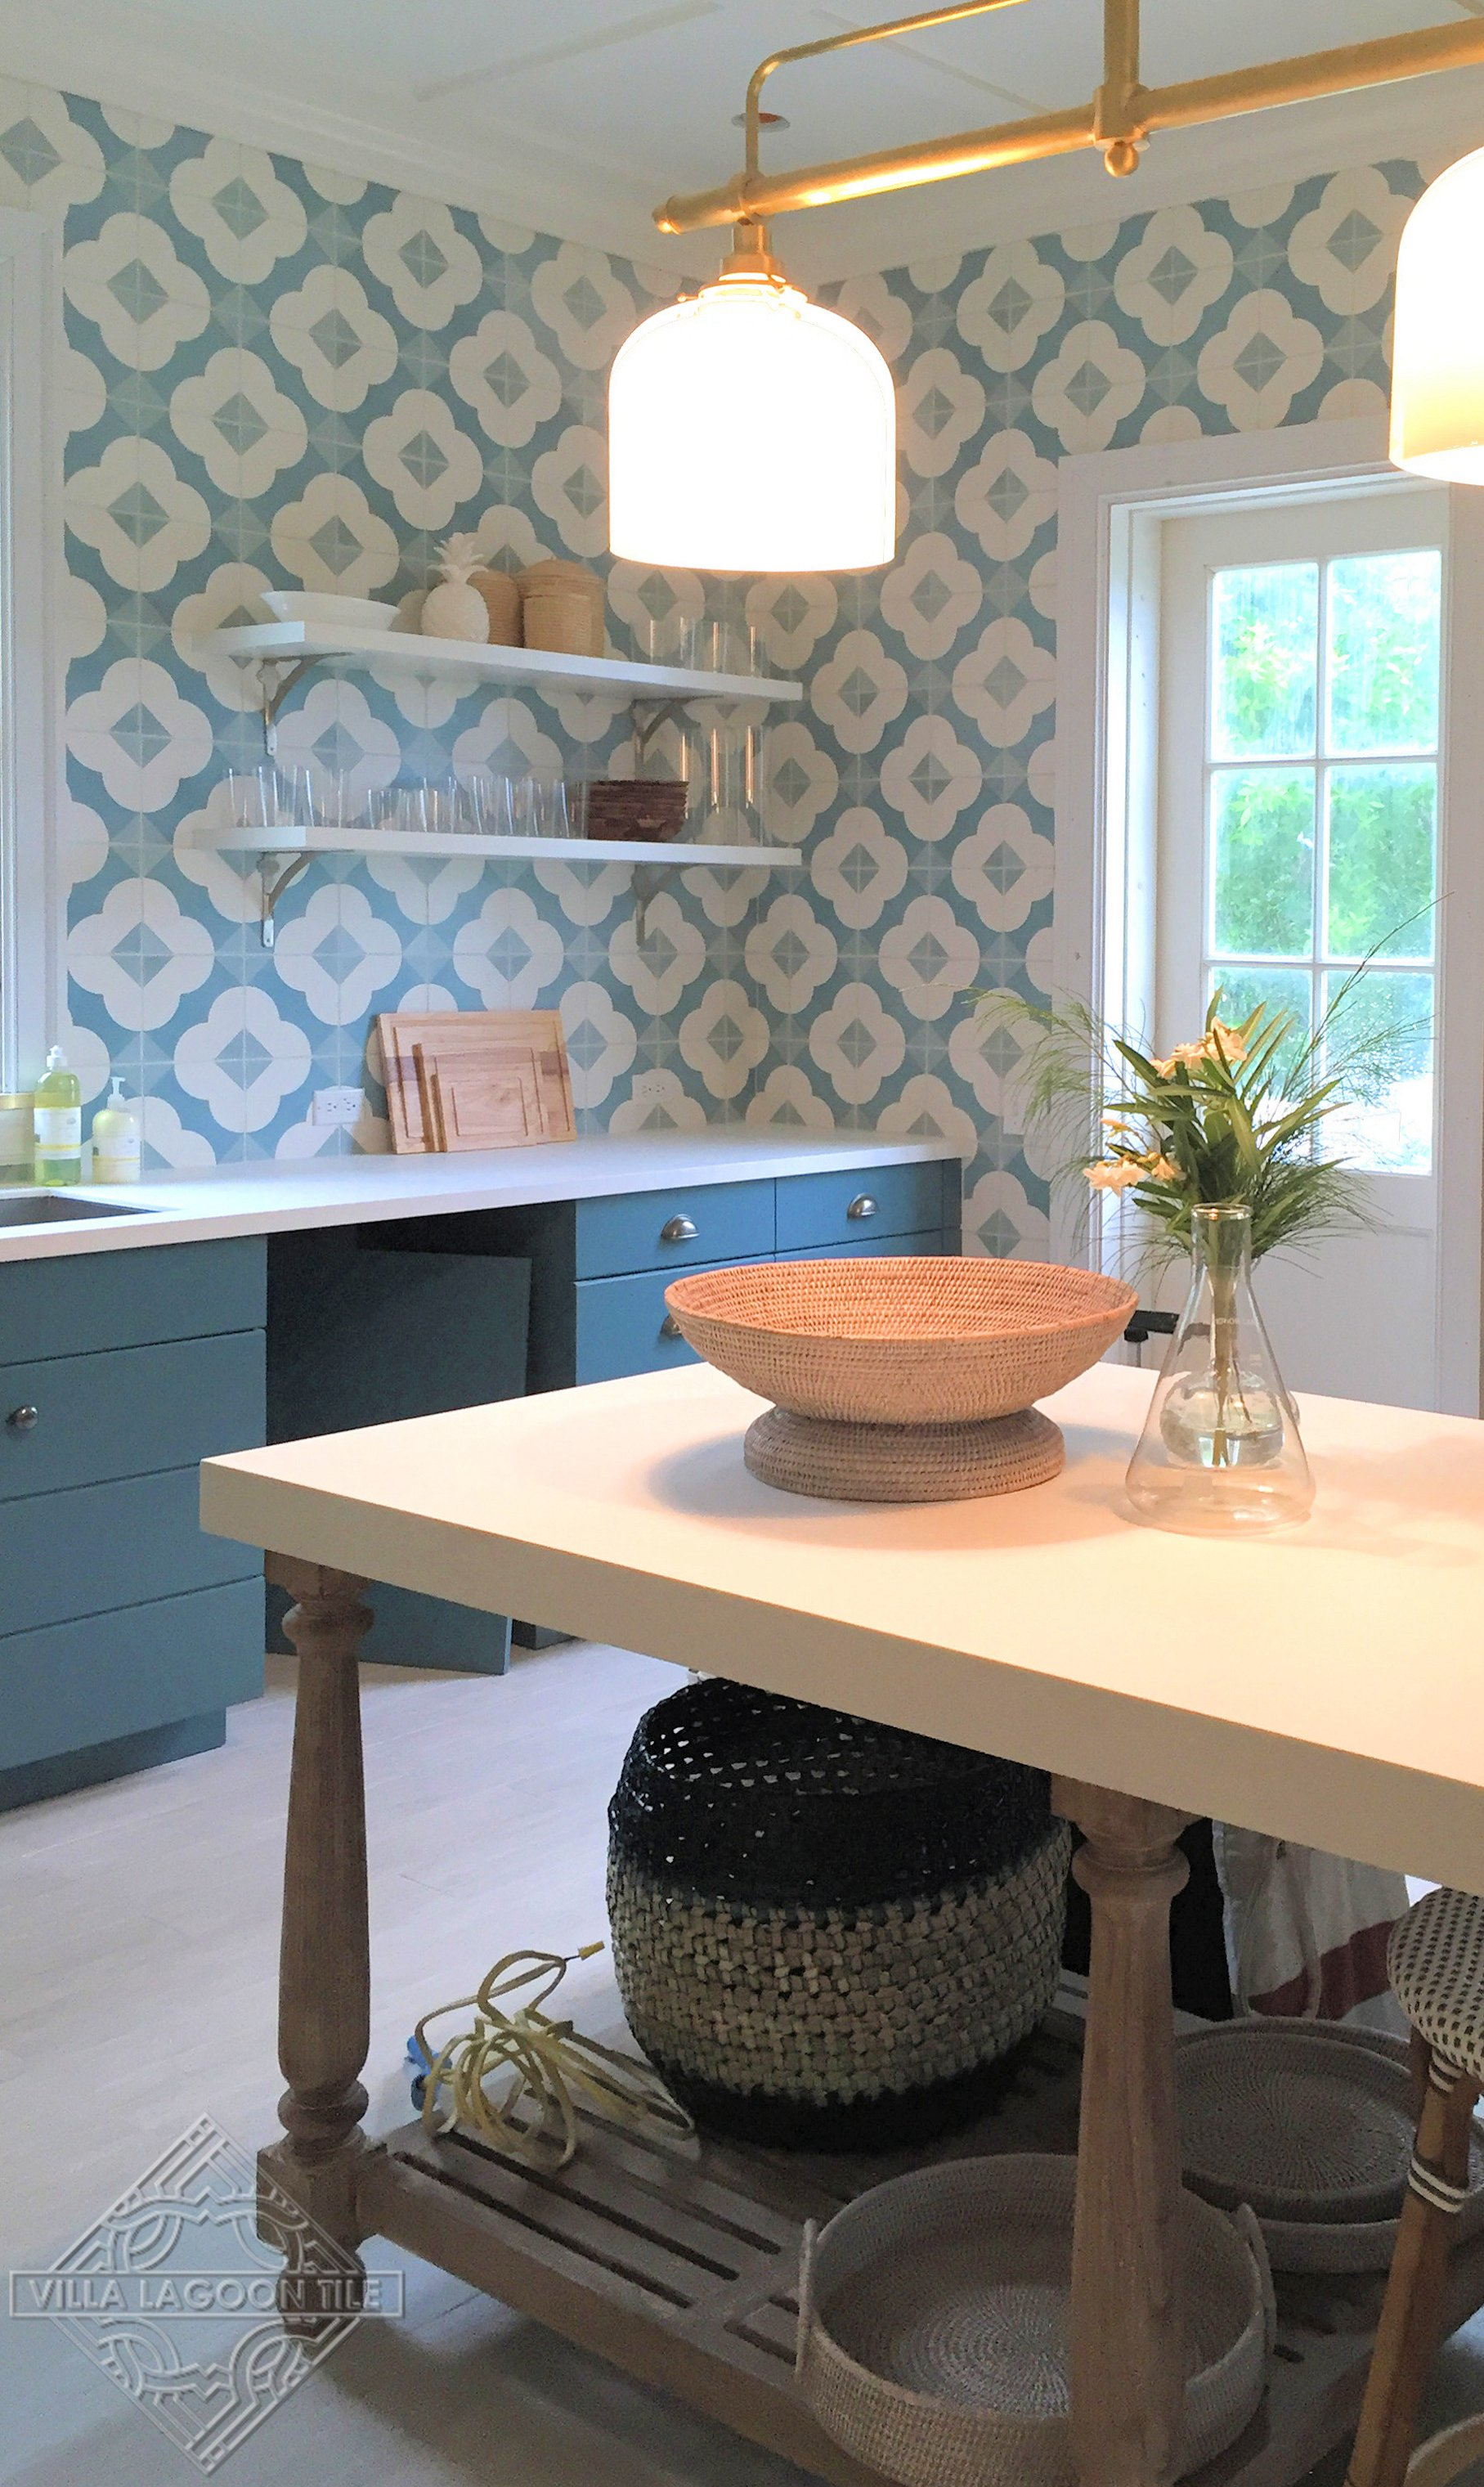 Beautiful kitchen featuring Villa Lagoon Tile's cement tile on the walls